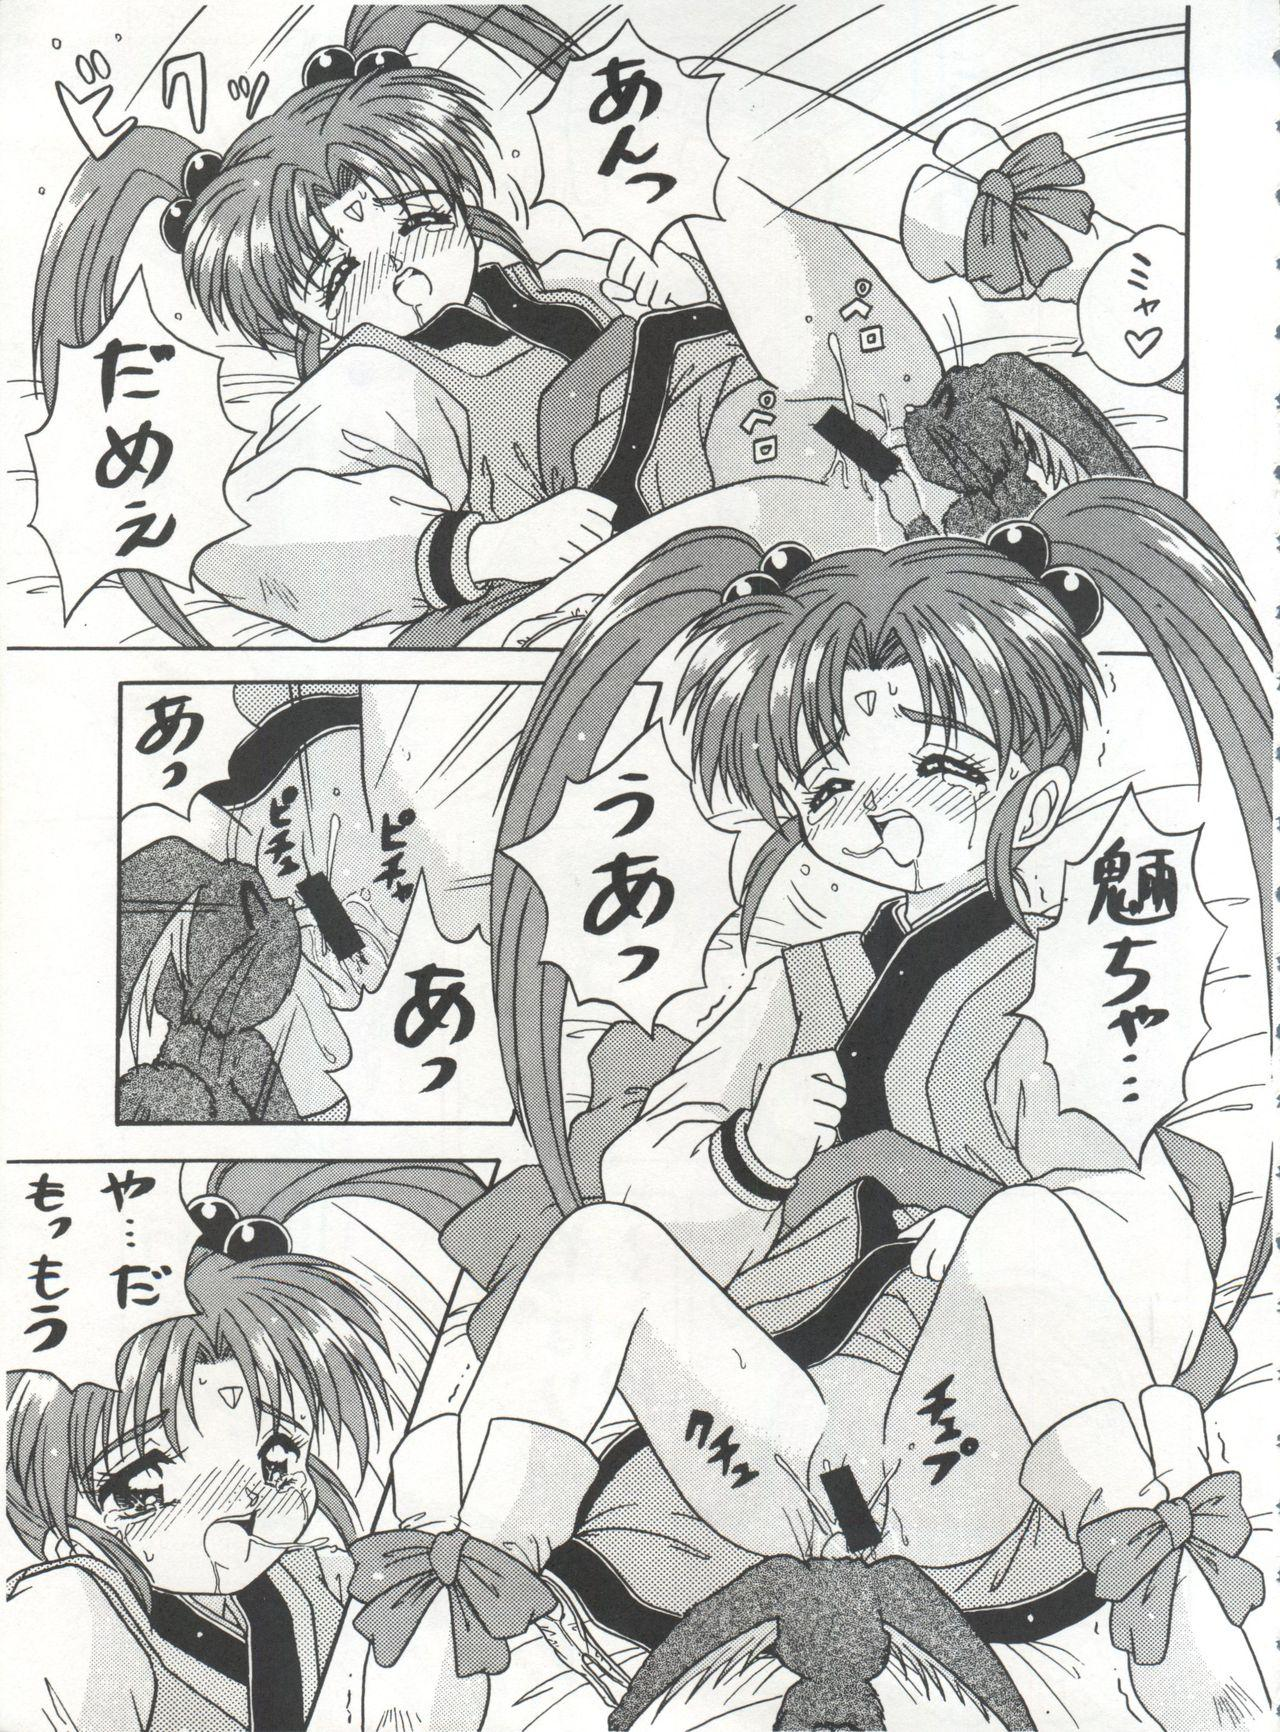 MOUSOU THEATER 6 + 96